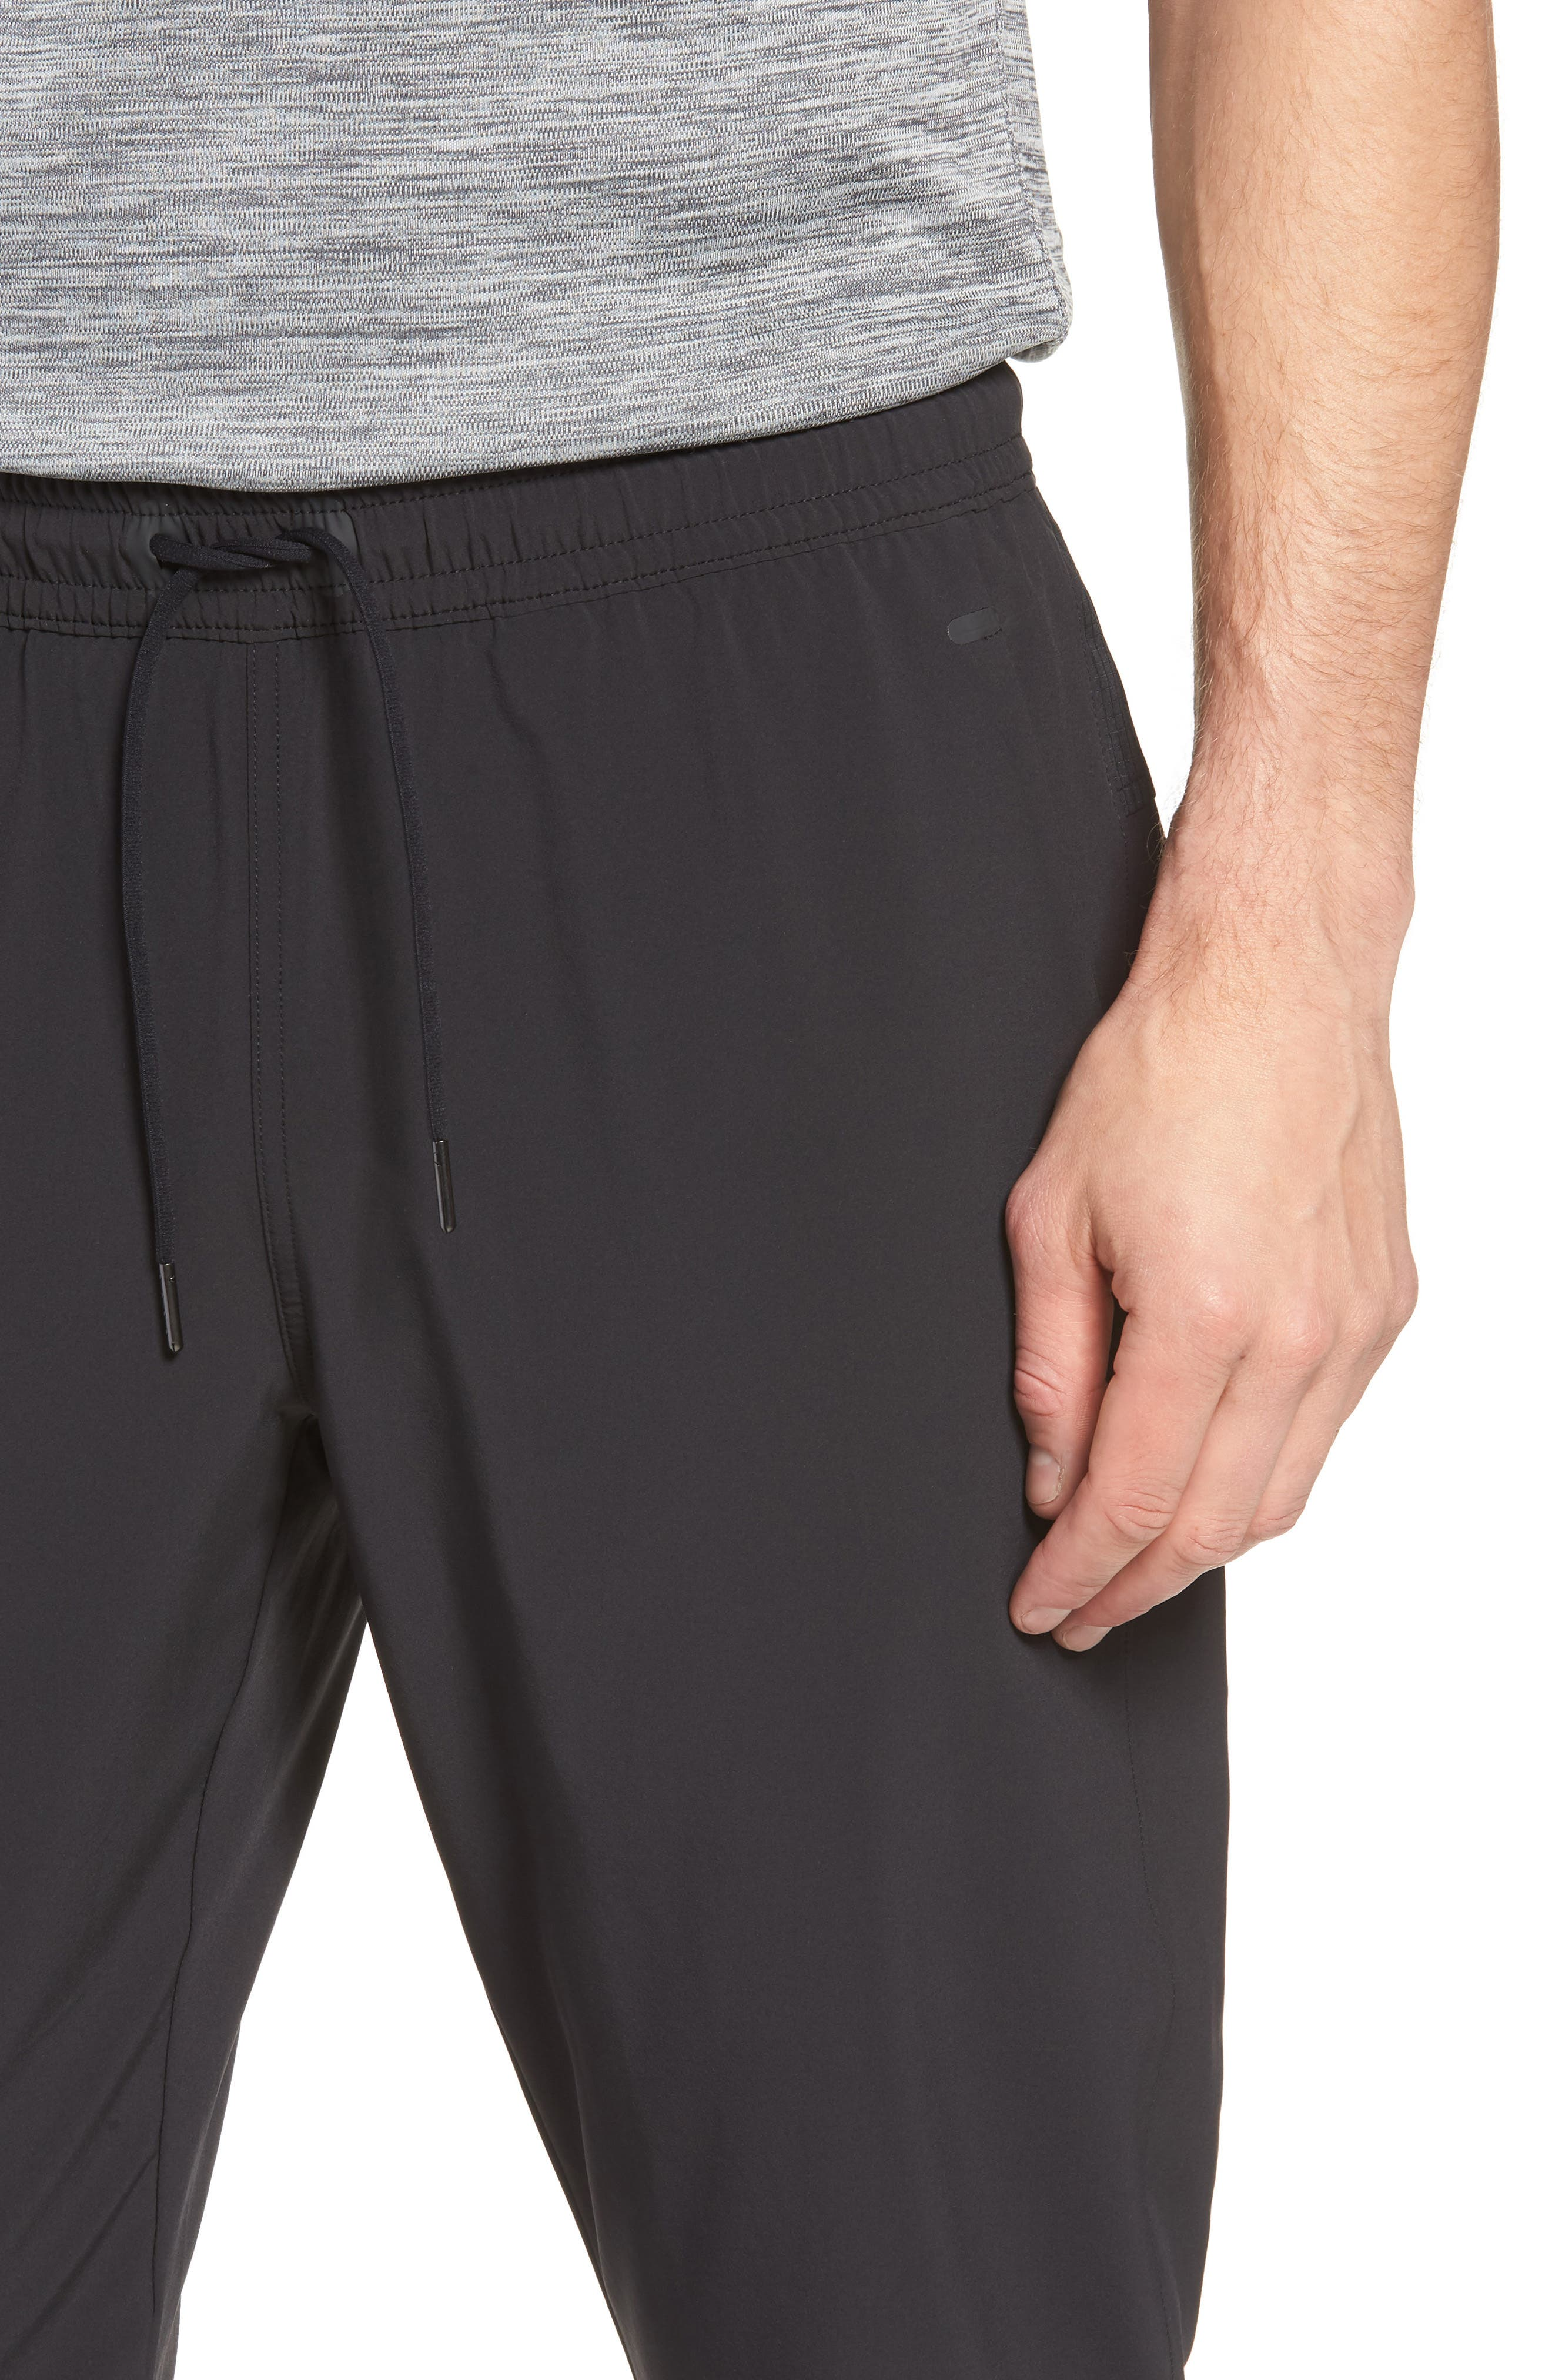 Graphite Tapered Athletic Pants,                             Alternate thumbnail 4, color,                             BLACK